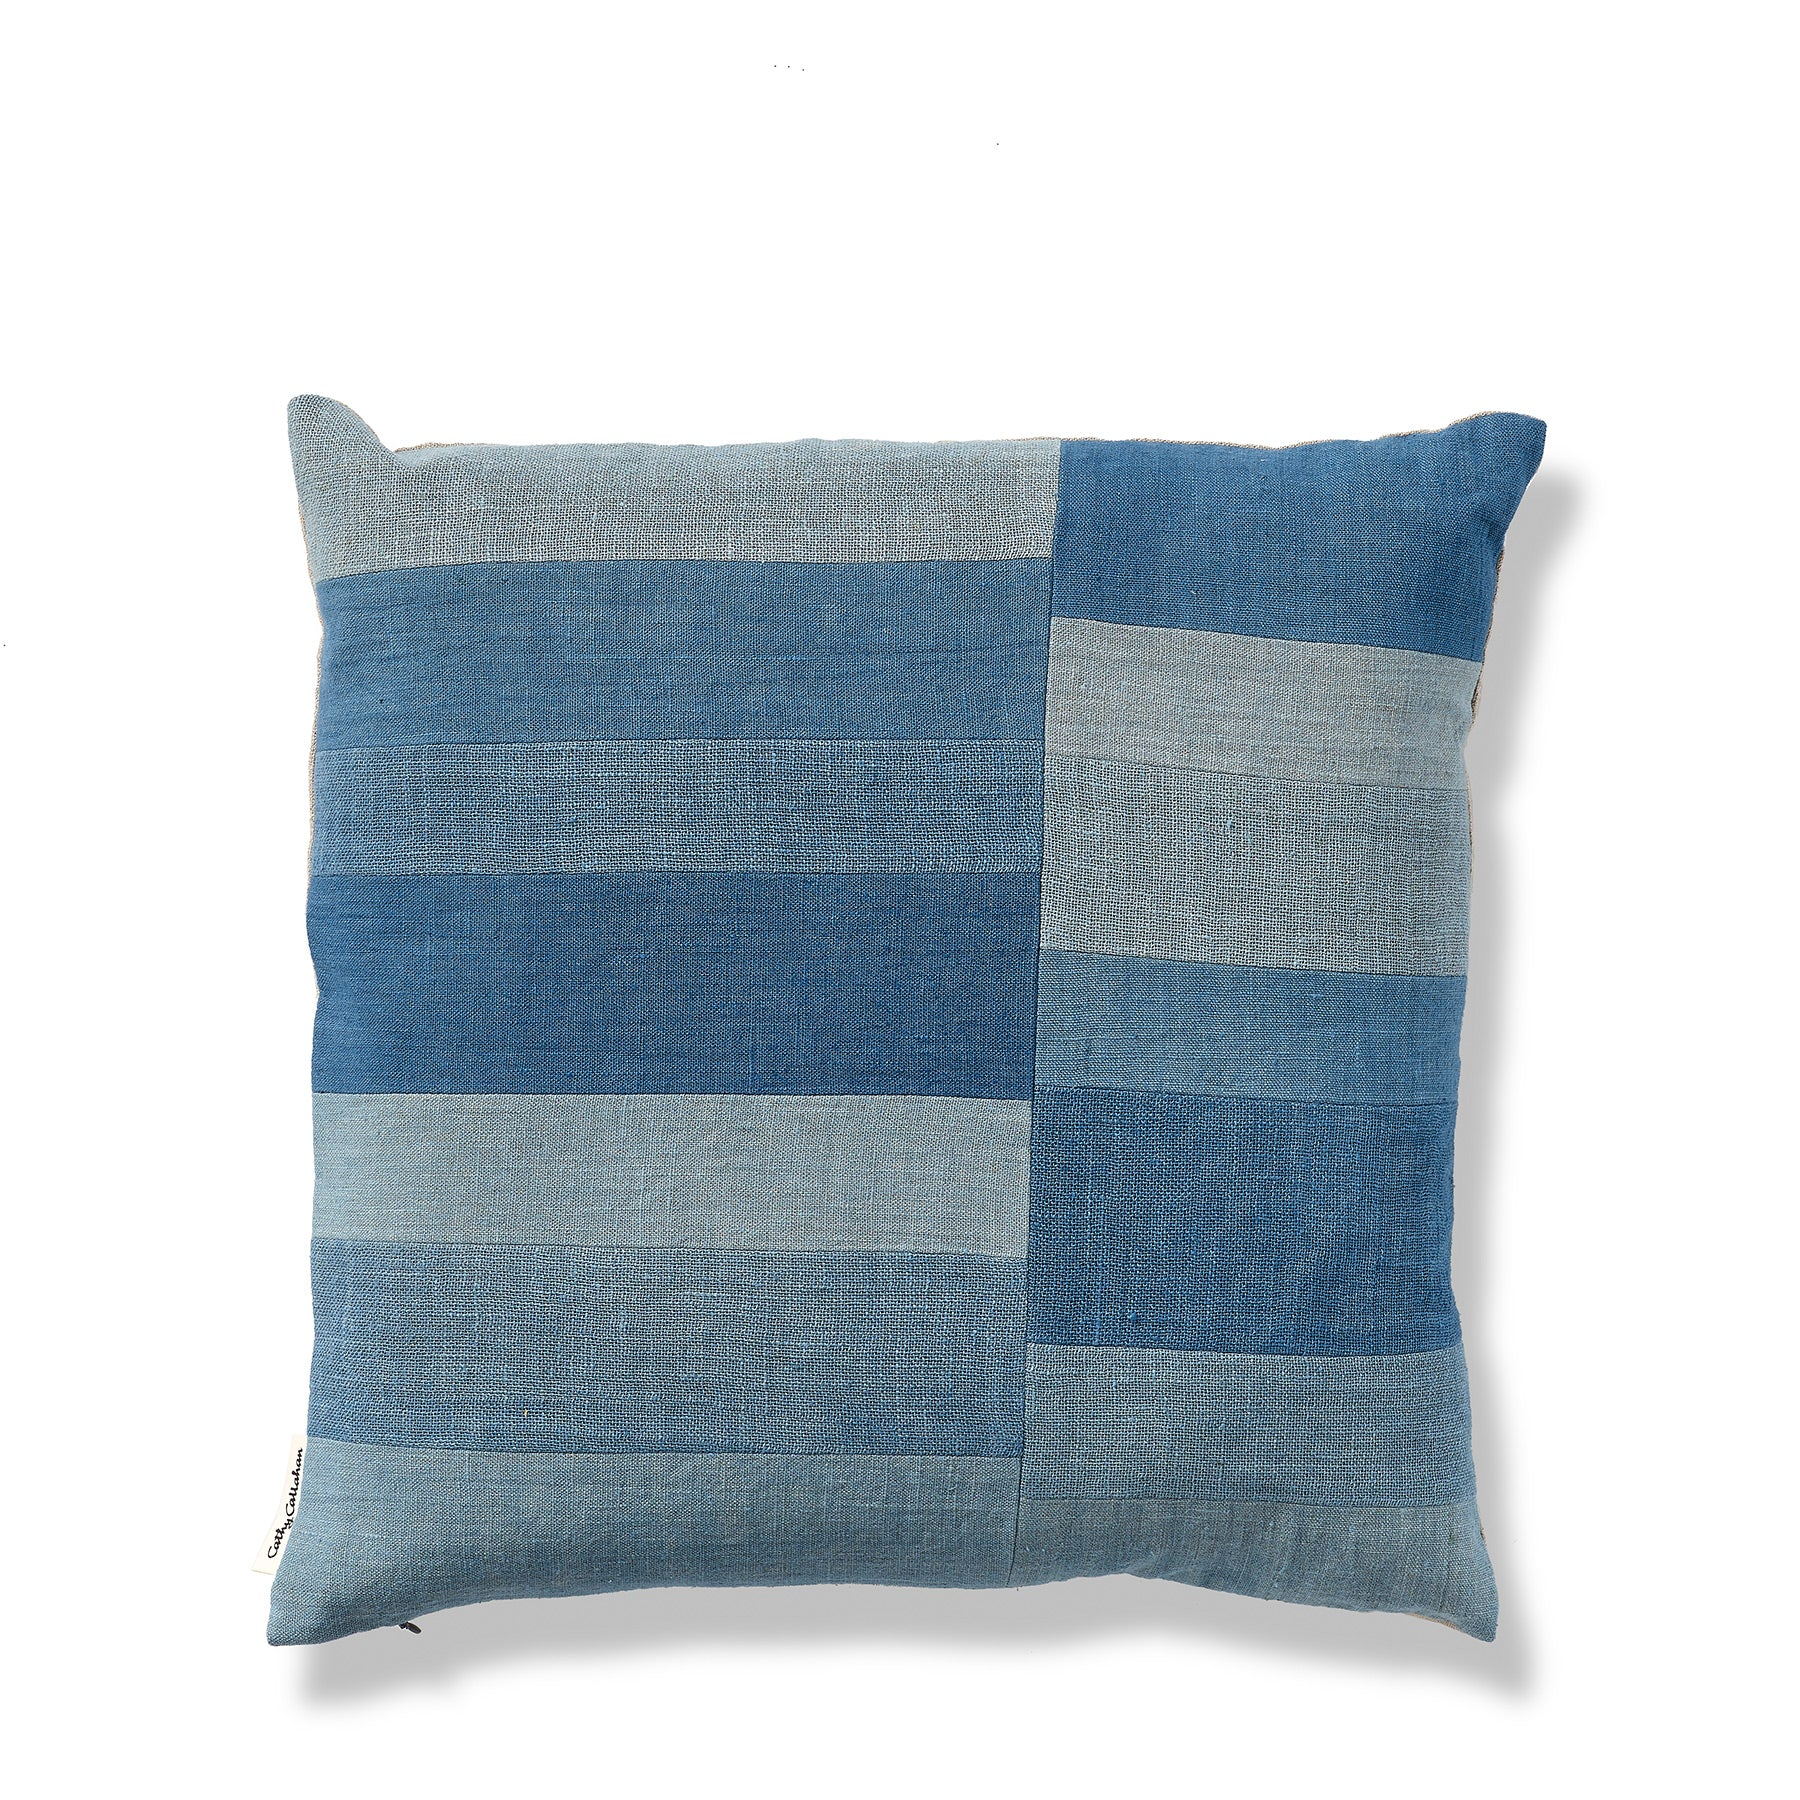 Split Stripe Patchwork Pillow in Blue Zoom Image 1